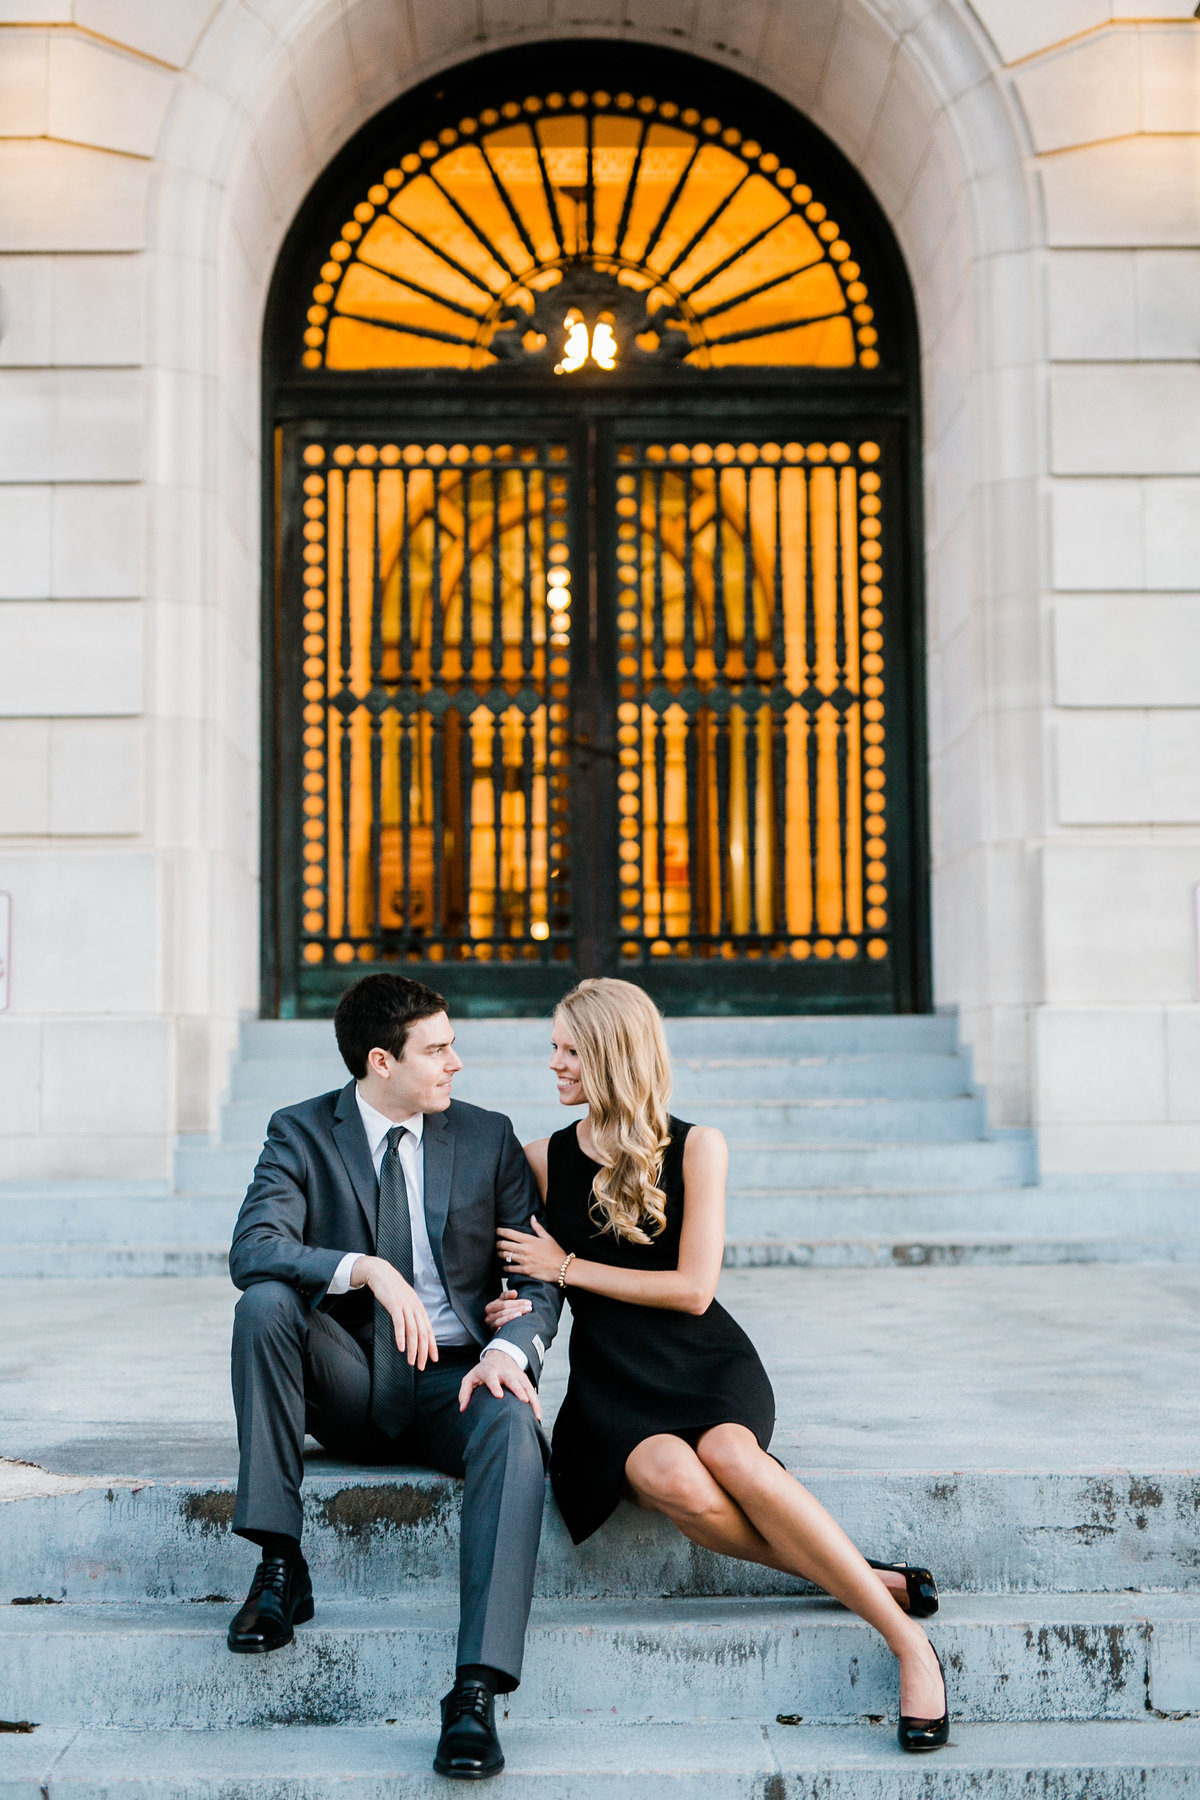 KatieBrech+Brandon-Engagements-101